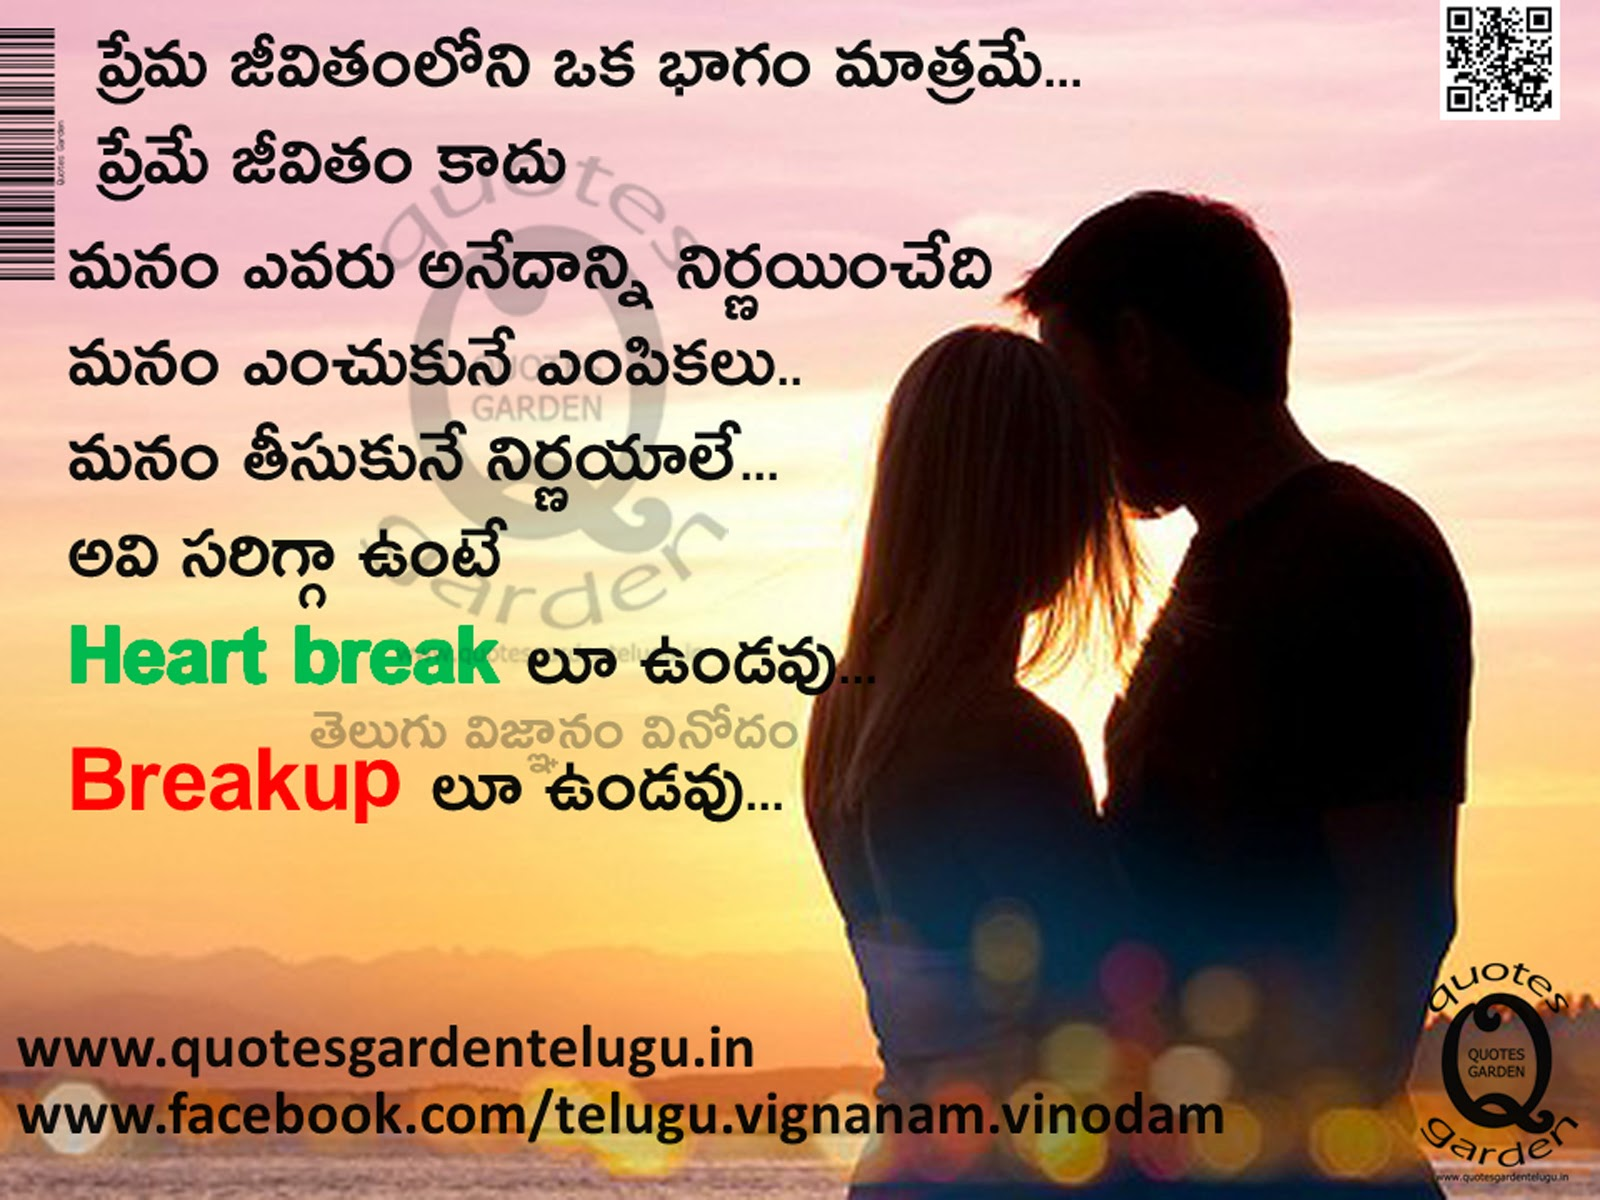 Telugu Love Quotes Unique Telugu Love And Inspirational Quotes  Quotes Garden Telugu